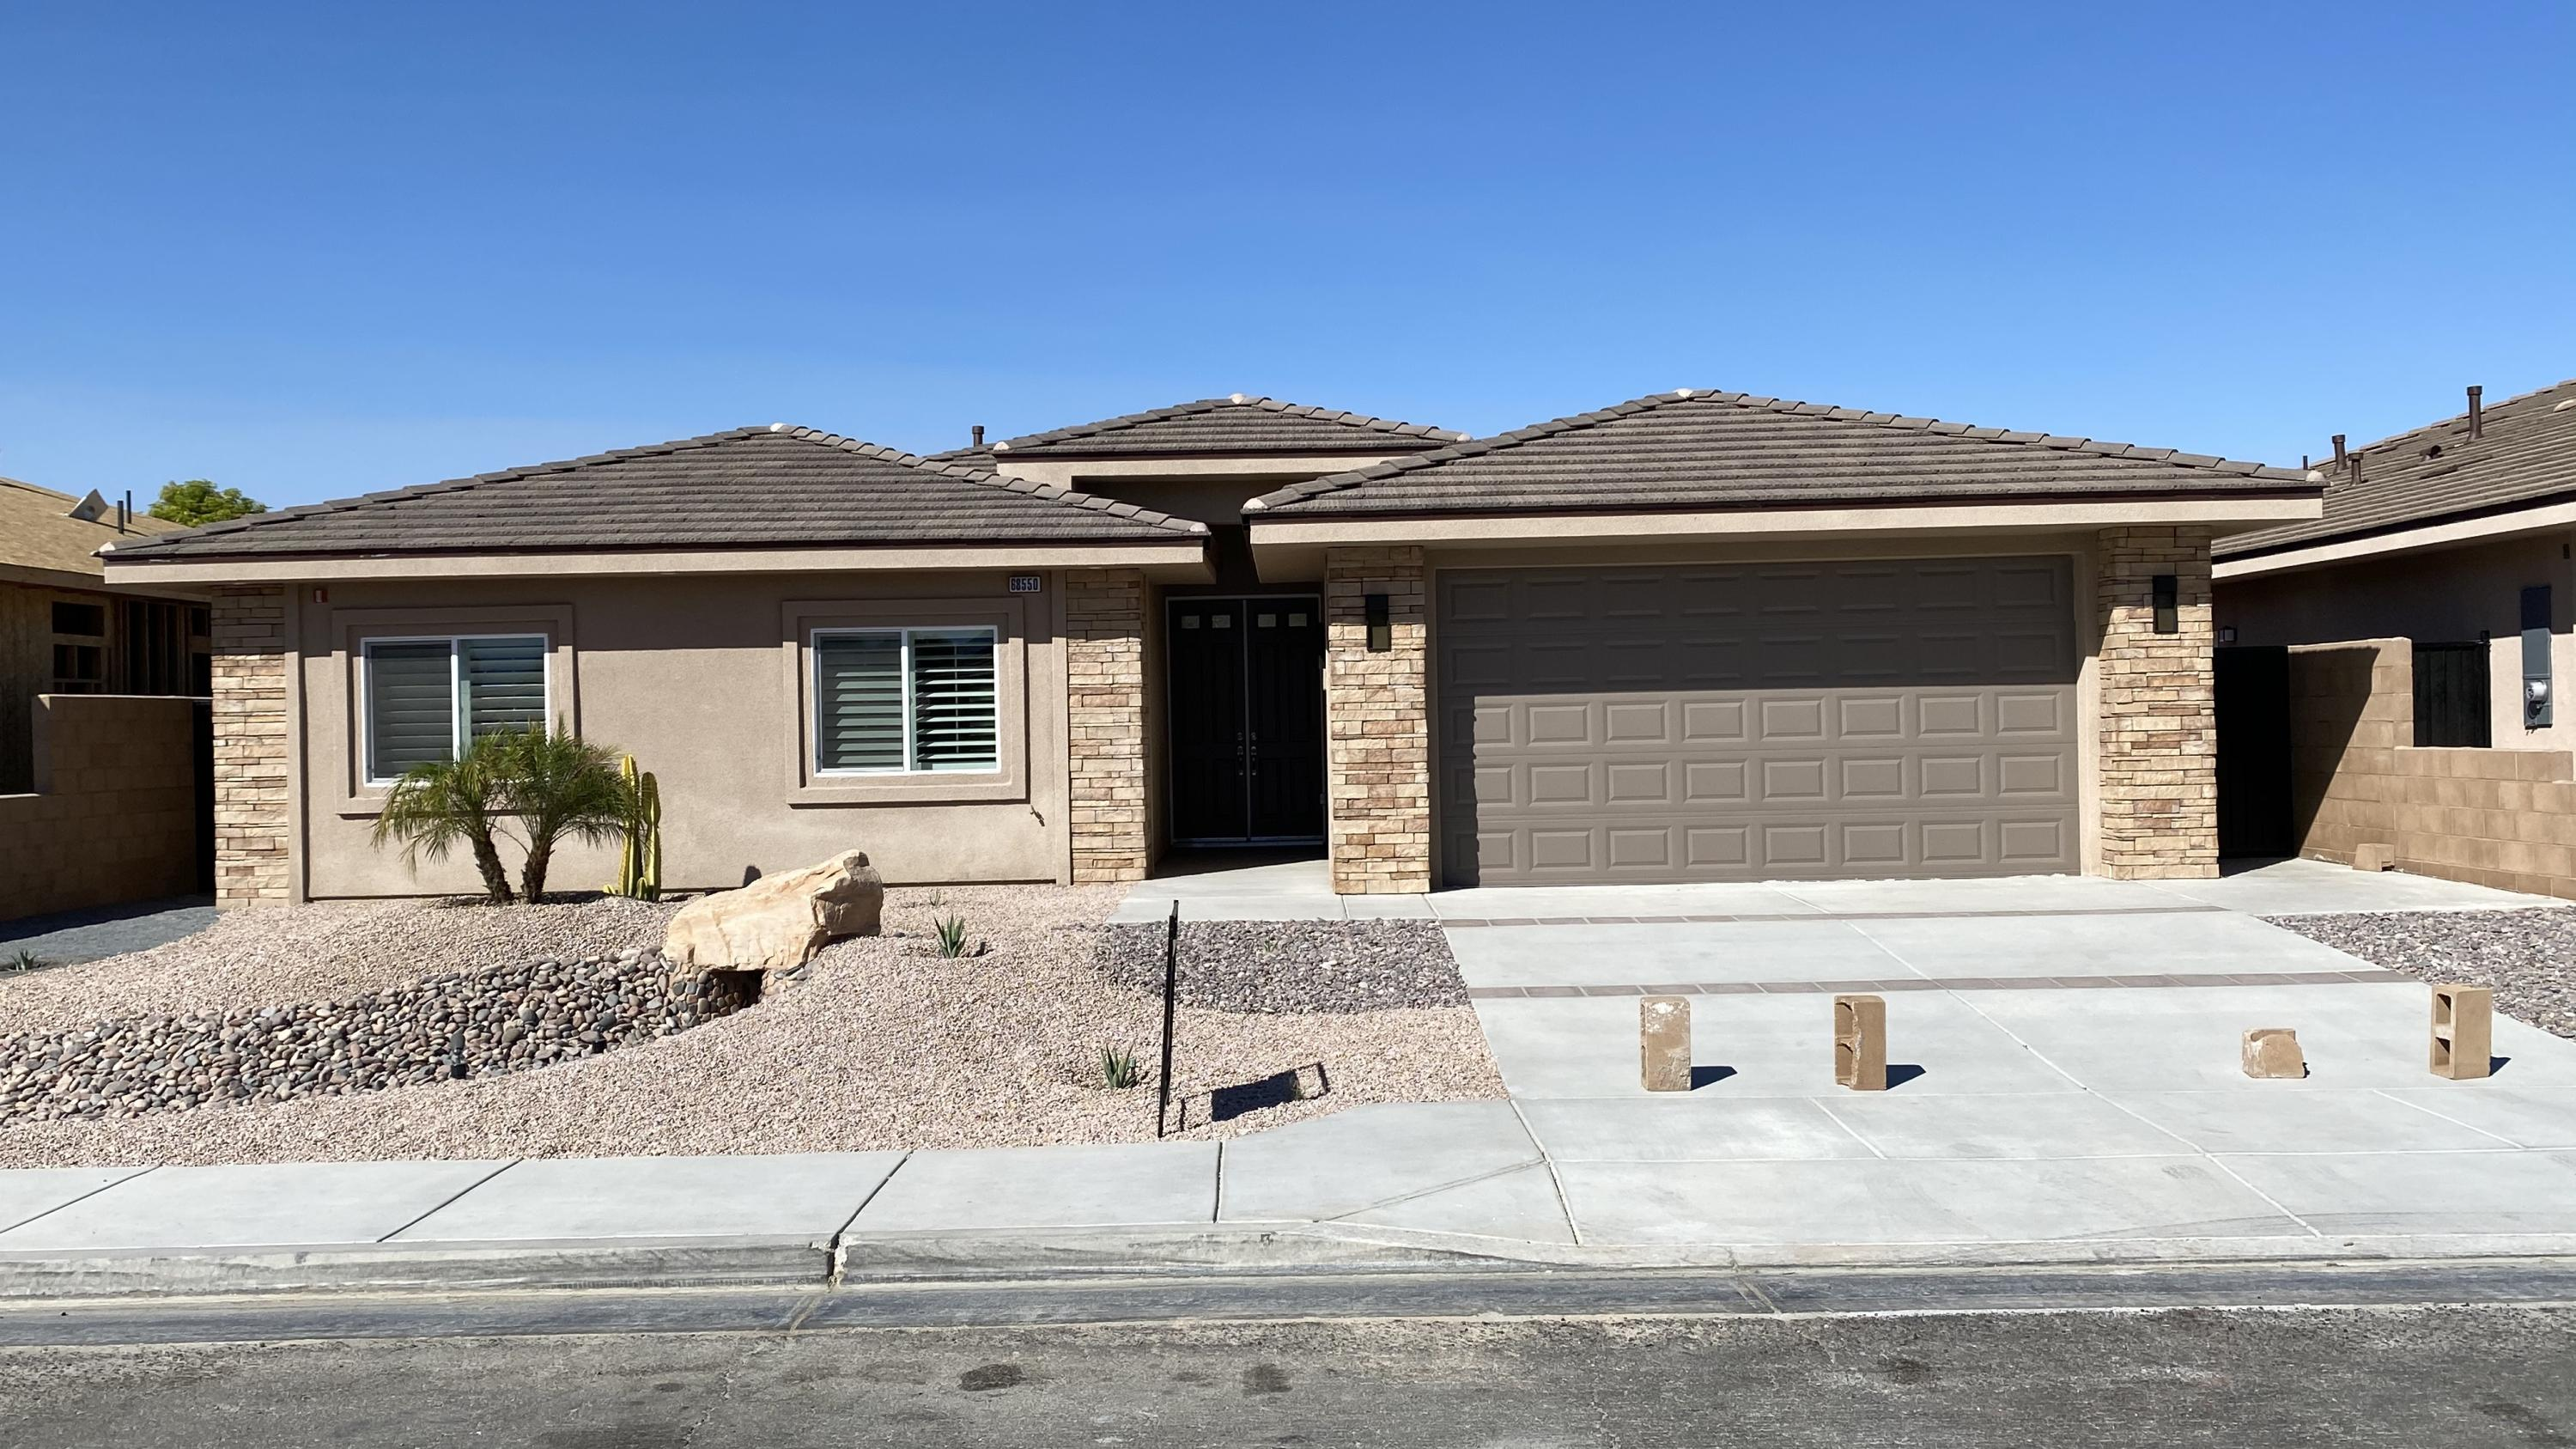 Your looking for a new Home? Look no more, this New Home has it all! 4 Bedrooms, 3 Baths, 2500 S.F., Pool & Spa with low maintenance front and back landscaping with lights. 2 Car Finished Garage (530sf garage, and insulated, 10 ft ceilings and 8 foot garage doors). Covered Patio (Over 200 SF), Block Wall Fencing with Rod iron gates on both sides. House is Extremely Energy Efficient (R 60 insulation in the ceilings, and R 27 on the walls, 2x6 Construction. Dual A/c units. 10 Foot Ceilings in the great room areas and 9 Foot ceilings in the bedrooms with ceiling fans throughout. Quartz Counter tops in Kitchen & Bathrooms. Upgraded Stainless Steel Appliances (Refrigerator, Stove, Dishwasher, Micro-Hood). Kitchen includes Pantry. Fans in each Bedroom, Great Room and Breakfast Nook. Recessed Lighting, Two-Tone Paint. Ceramic Tile throughout, built above Energy Efficiency Standards. This home has many other upgrades and incredible Mountain views, it's a must see! Model available to show, Call for completion date. Colors may vary.